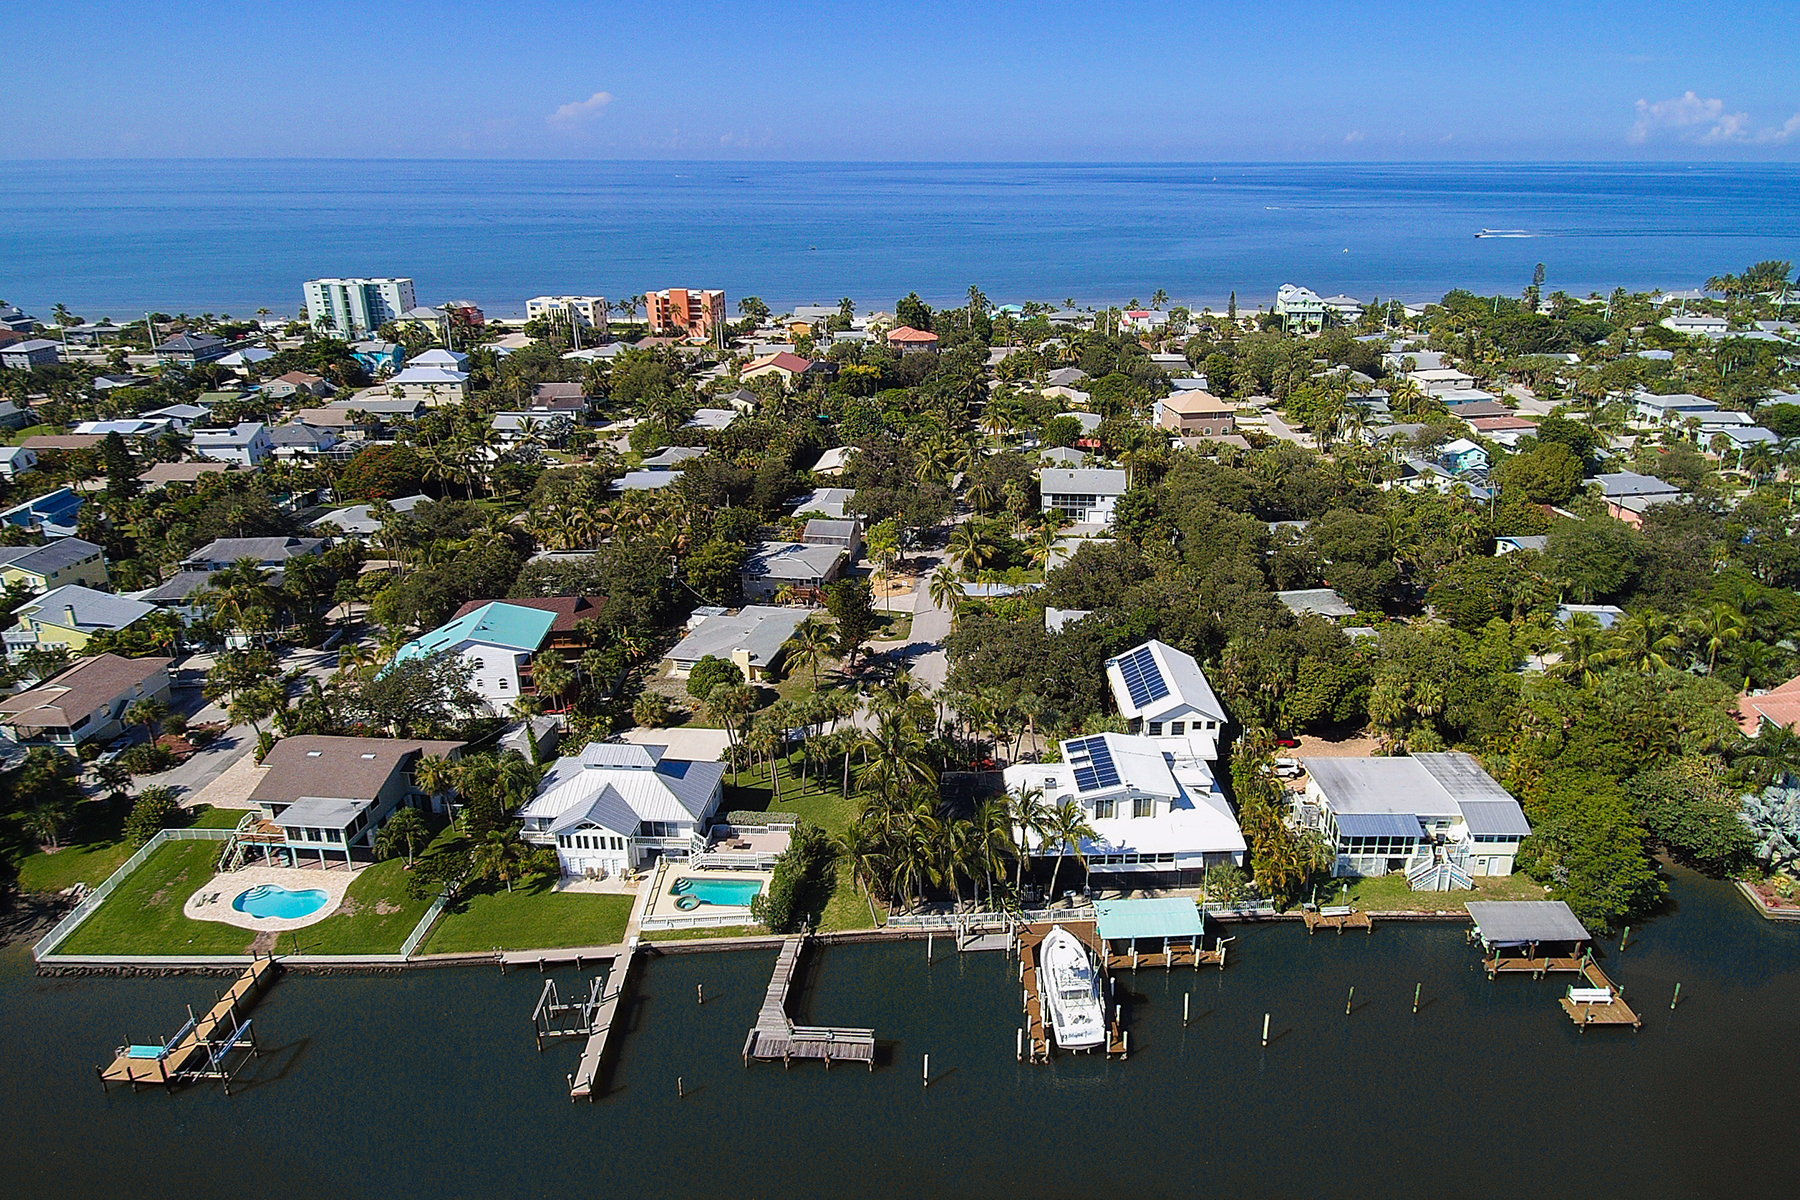 Single Family Home for Sale at SABAL SHORES 189 Sabal Dr, Fort Myers Beach, Florida 33931 United States